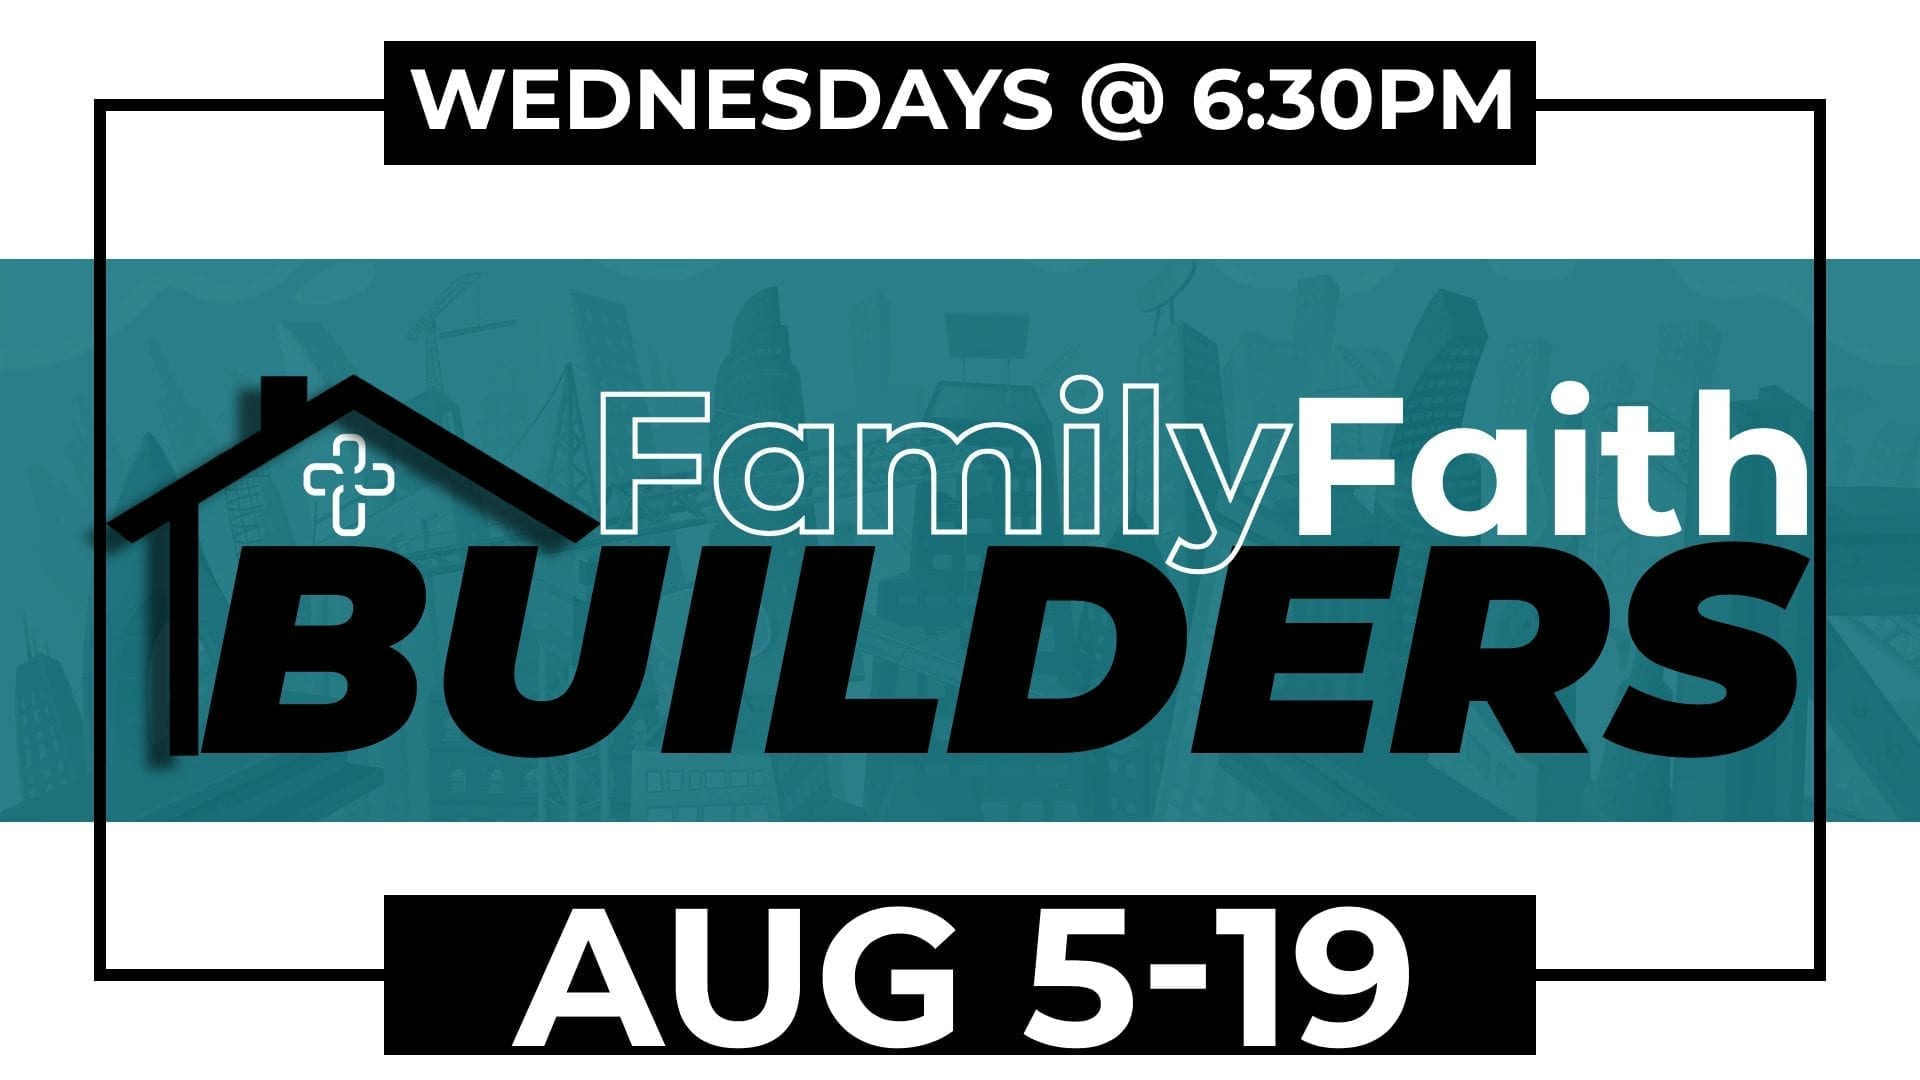 Family Faith Builders